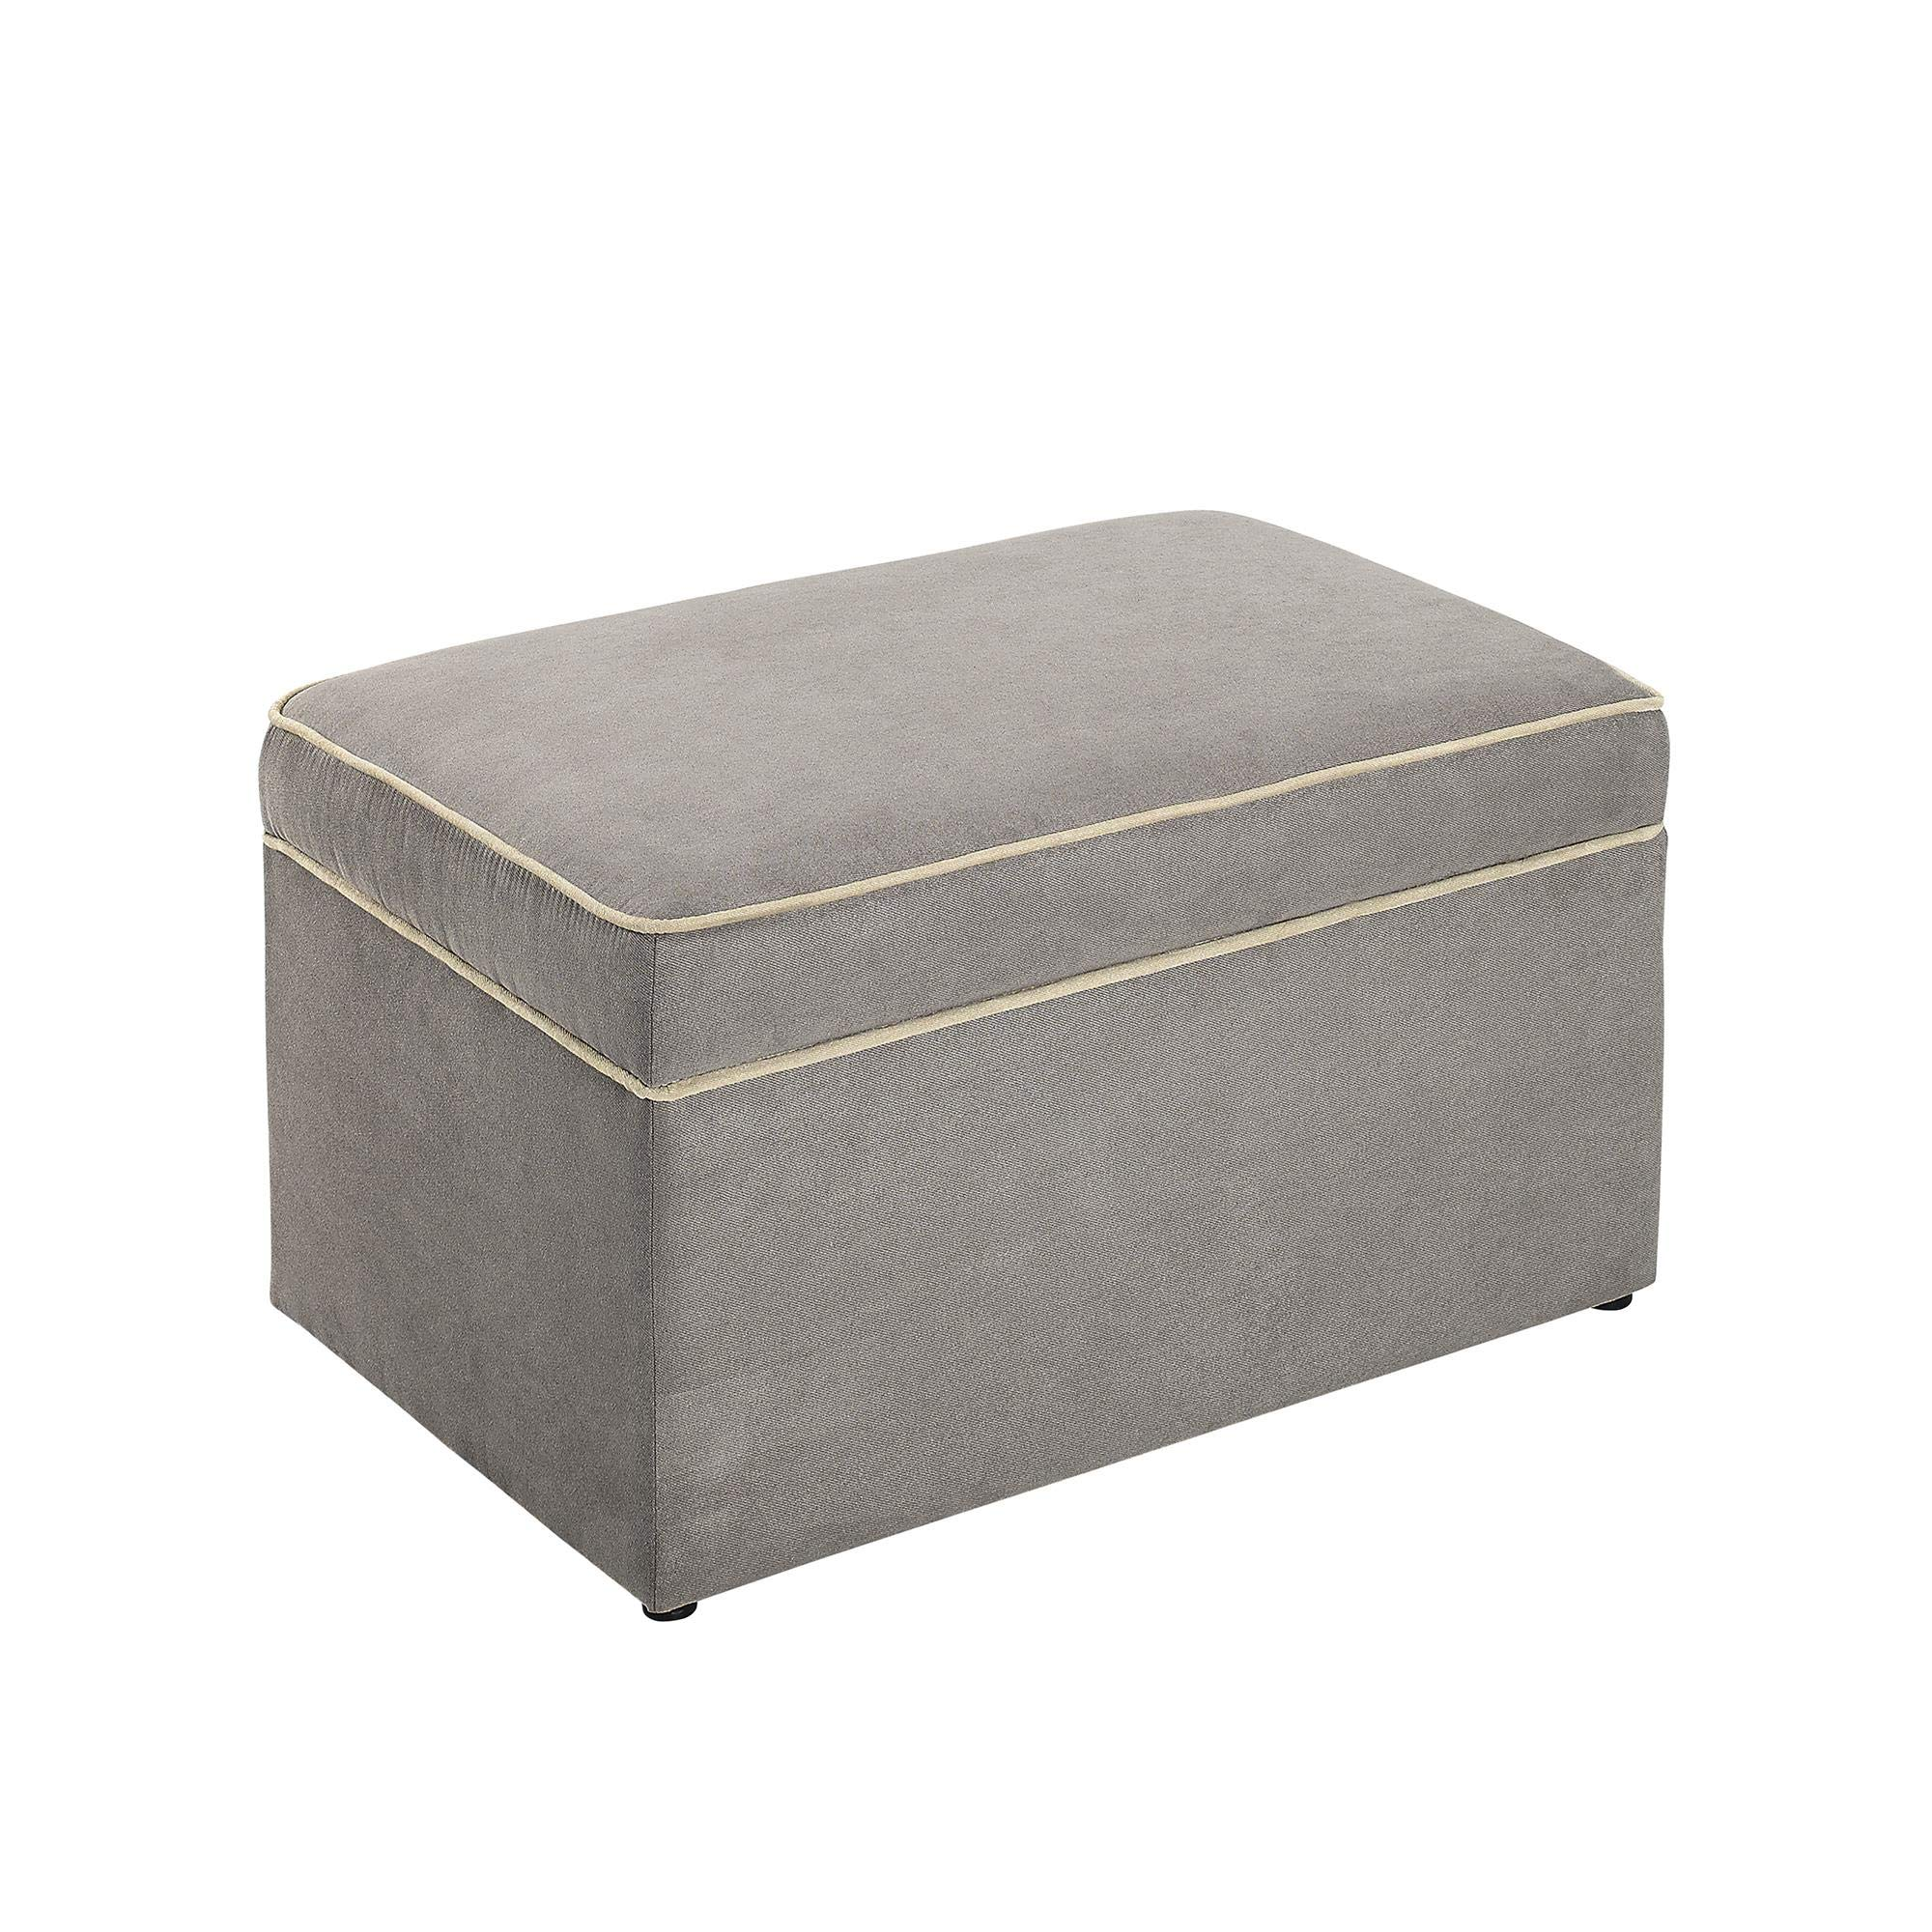 Baby Relax Hadley Nursery Storage Ottoman for Baby Gliders, Dark Taupe Dark Taupe by Baby Relax